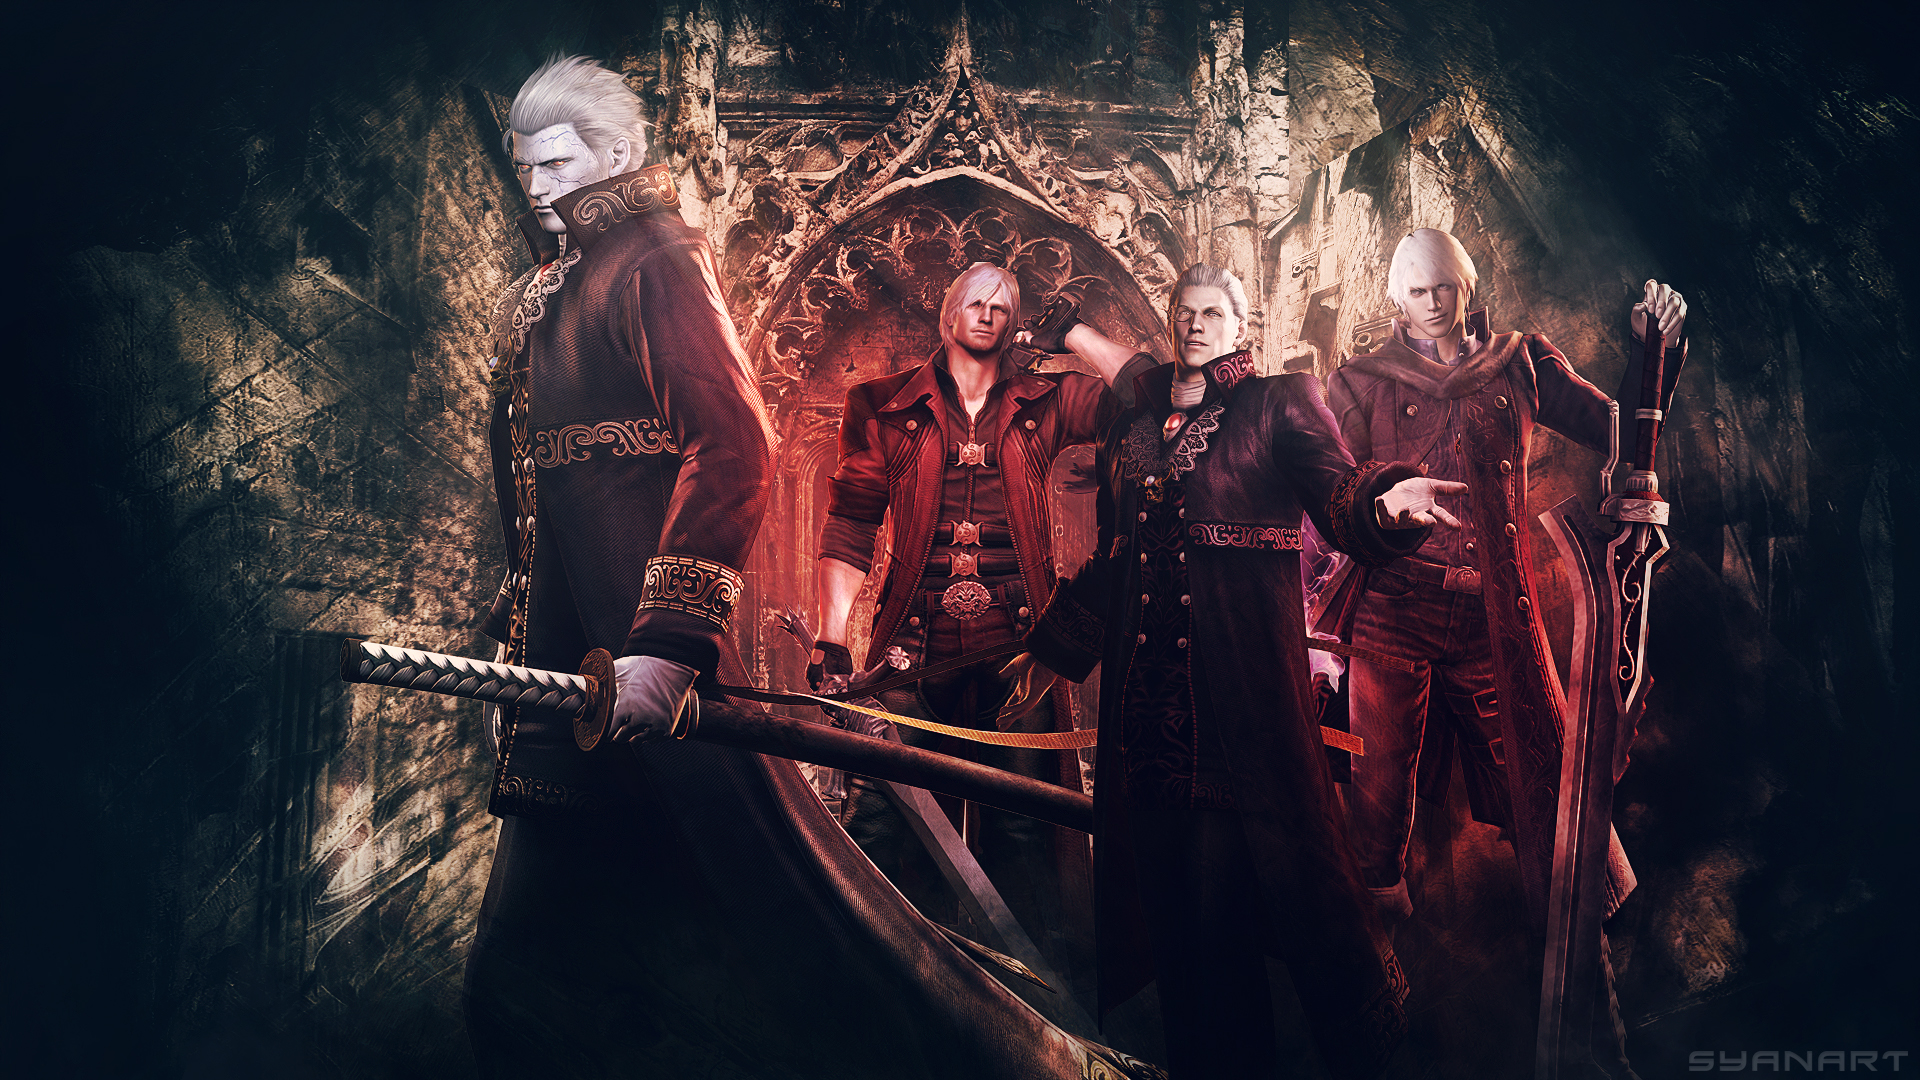 Devil May Cry 4 Special Edition Wallpaper Syanart Station